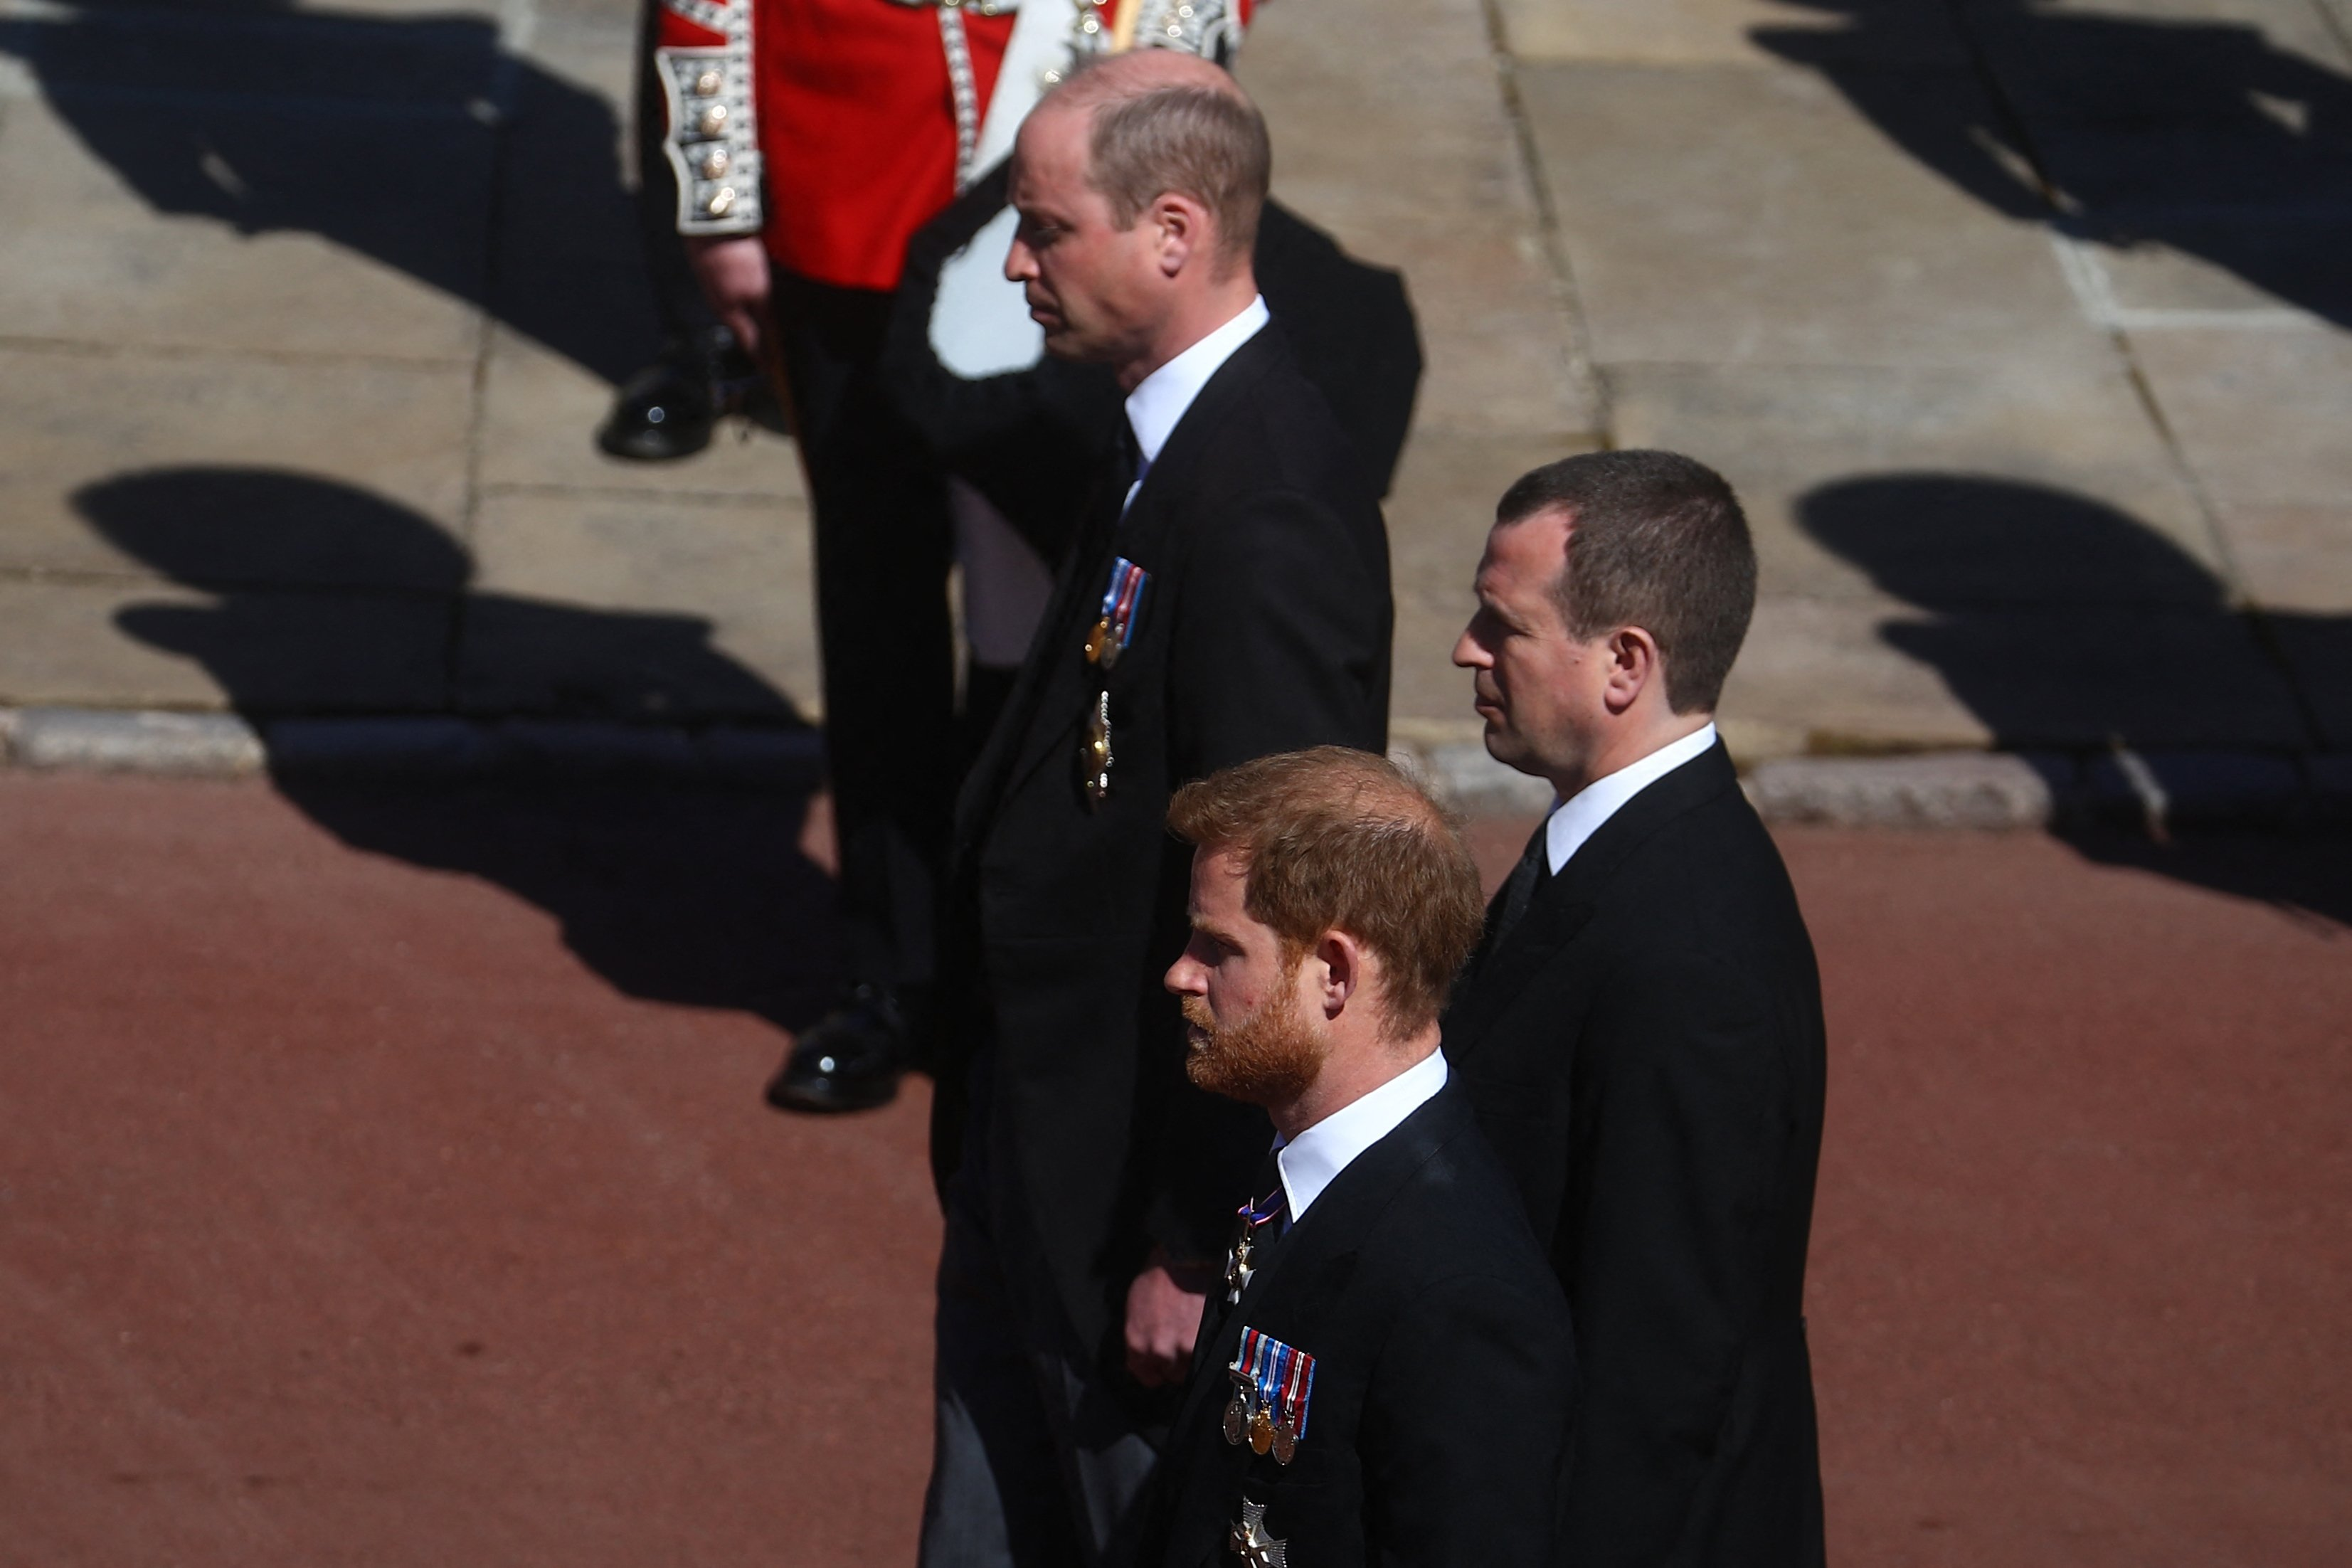 Prince William, Prince Harry and their cousin Peter Phillips follow the coffin of their grandfather, Prince Philip, the Duke of Edinburgh on April, 17, 2021